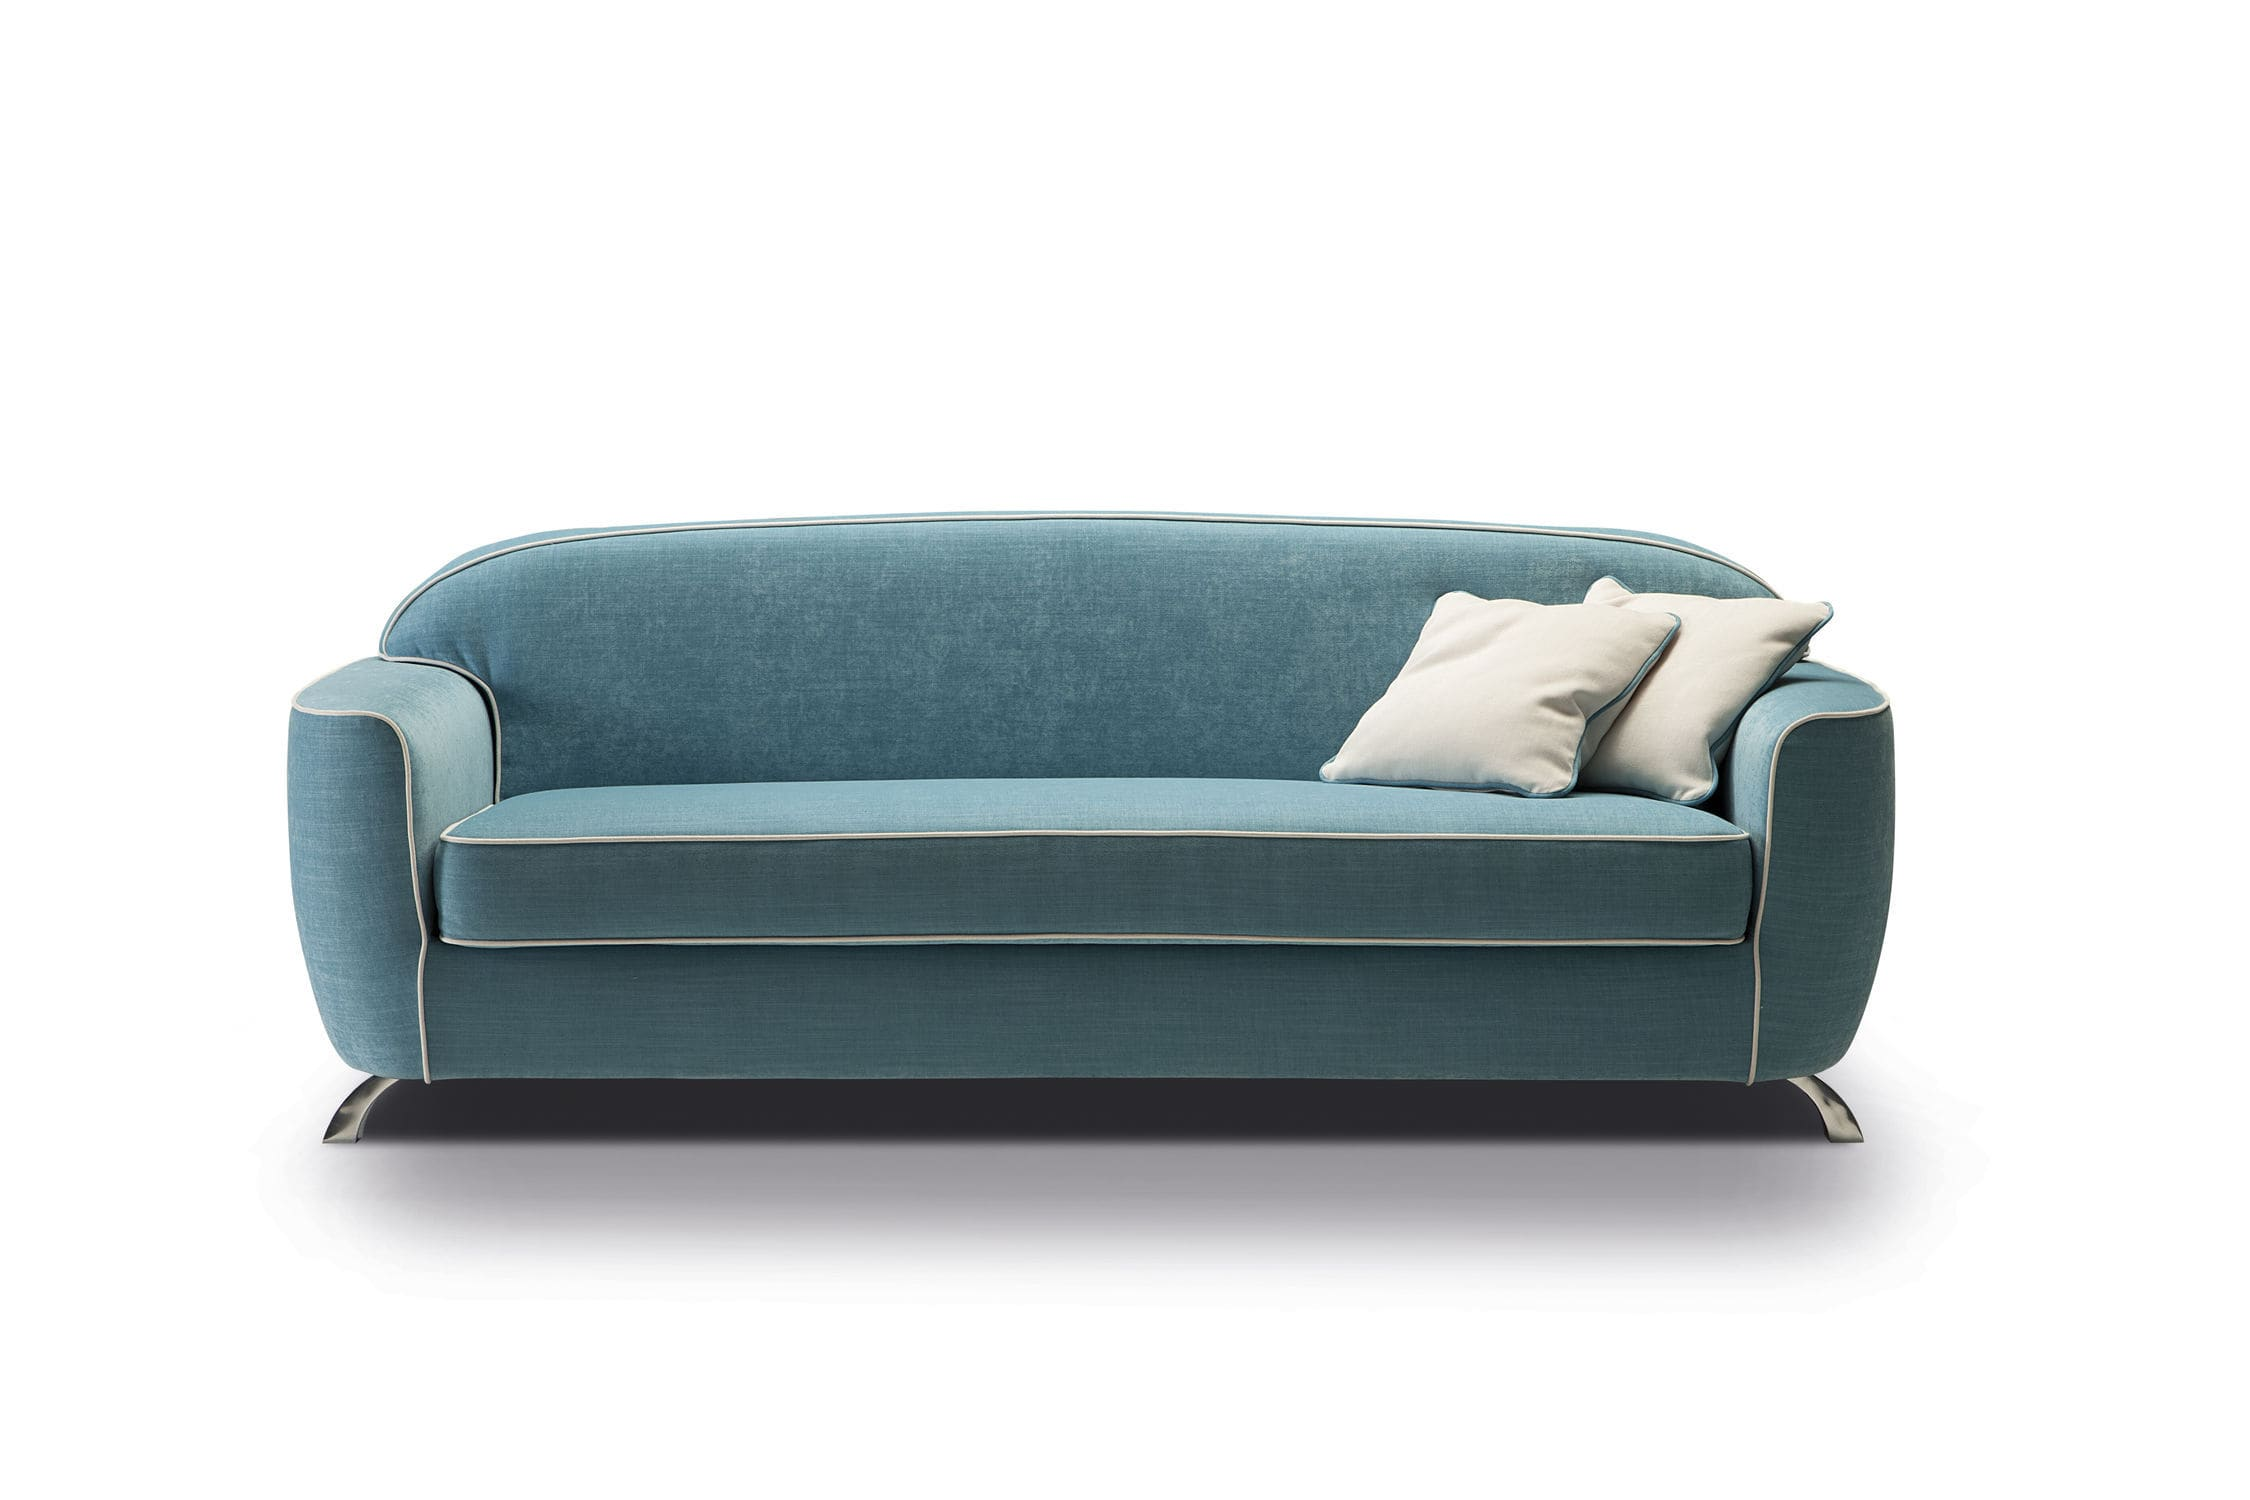 Sofa Bed Contemporary Fabric With Washable Removable Cover